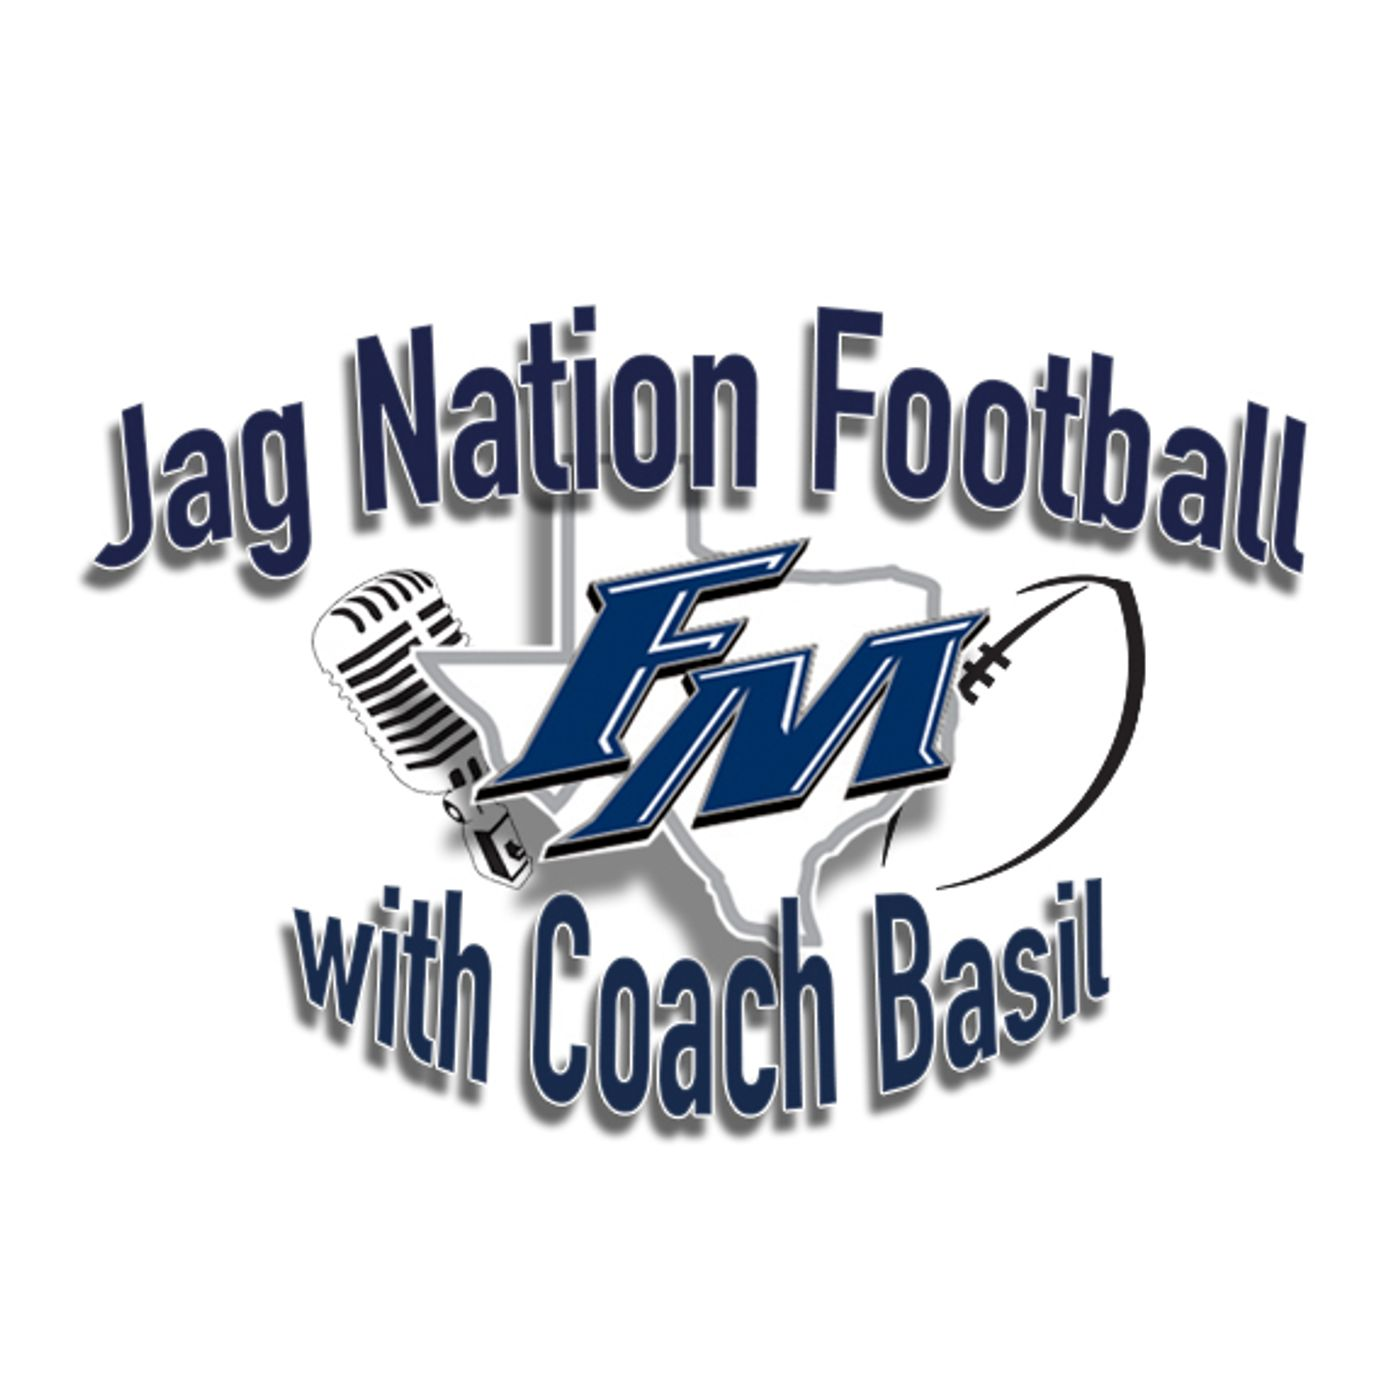 Week One sit down with Coach Basil on Jag Nation Radio